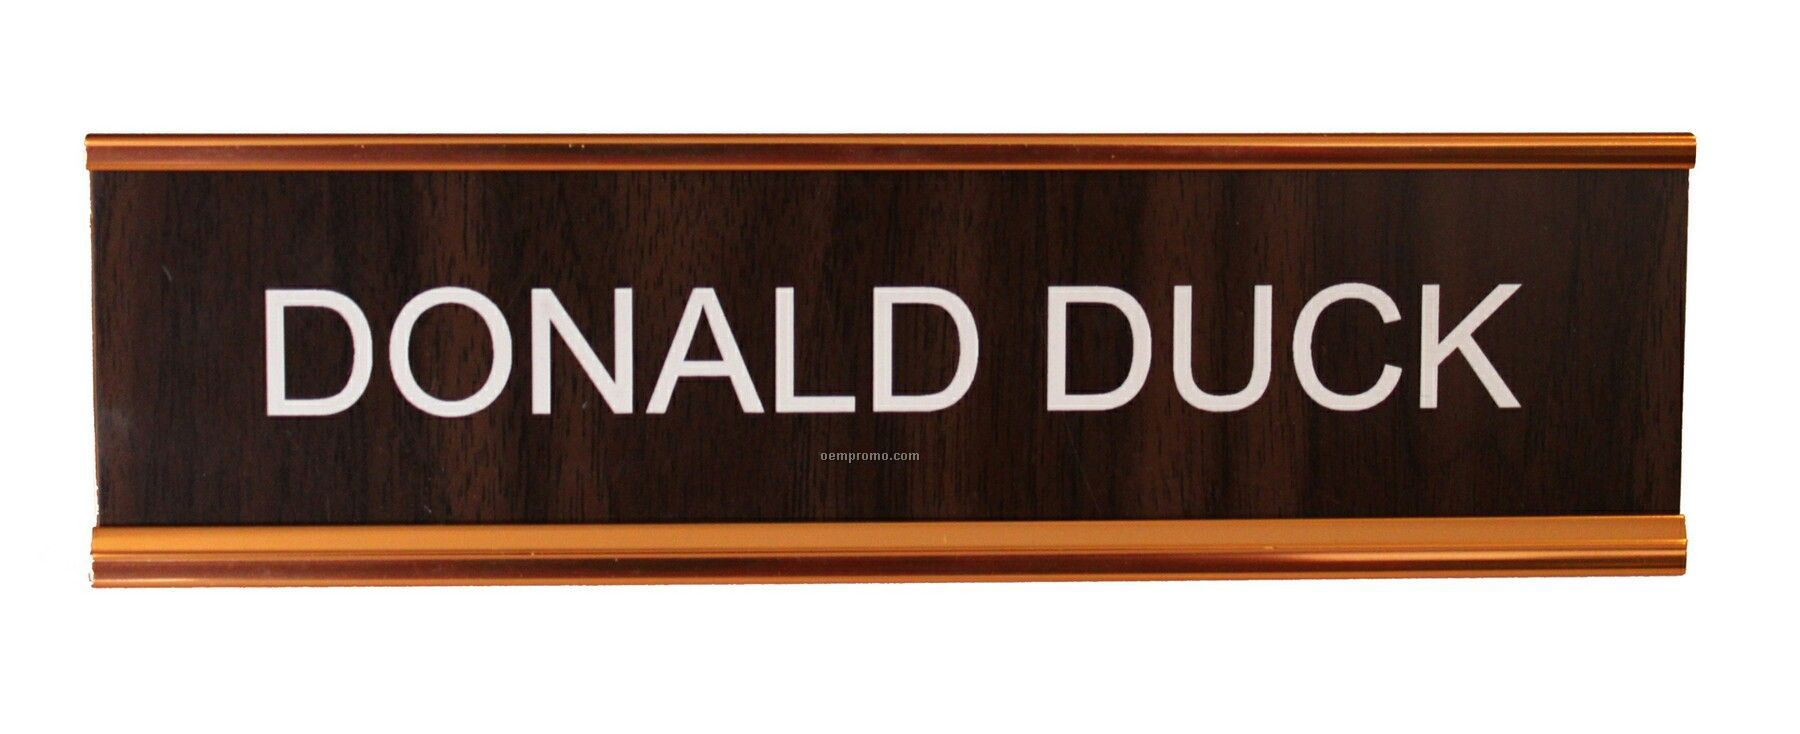 office name plate template for cubicles just b cause. Black Bedroom Furniture Sets. Home Design Ideas